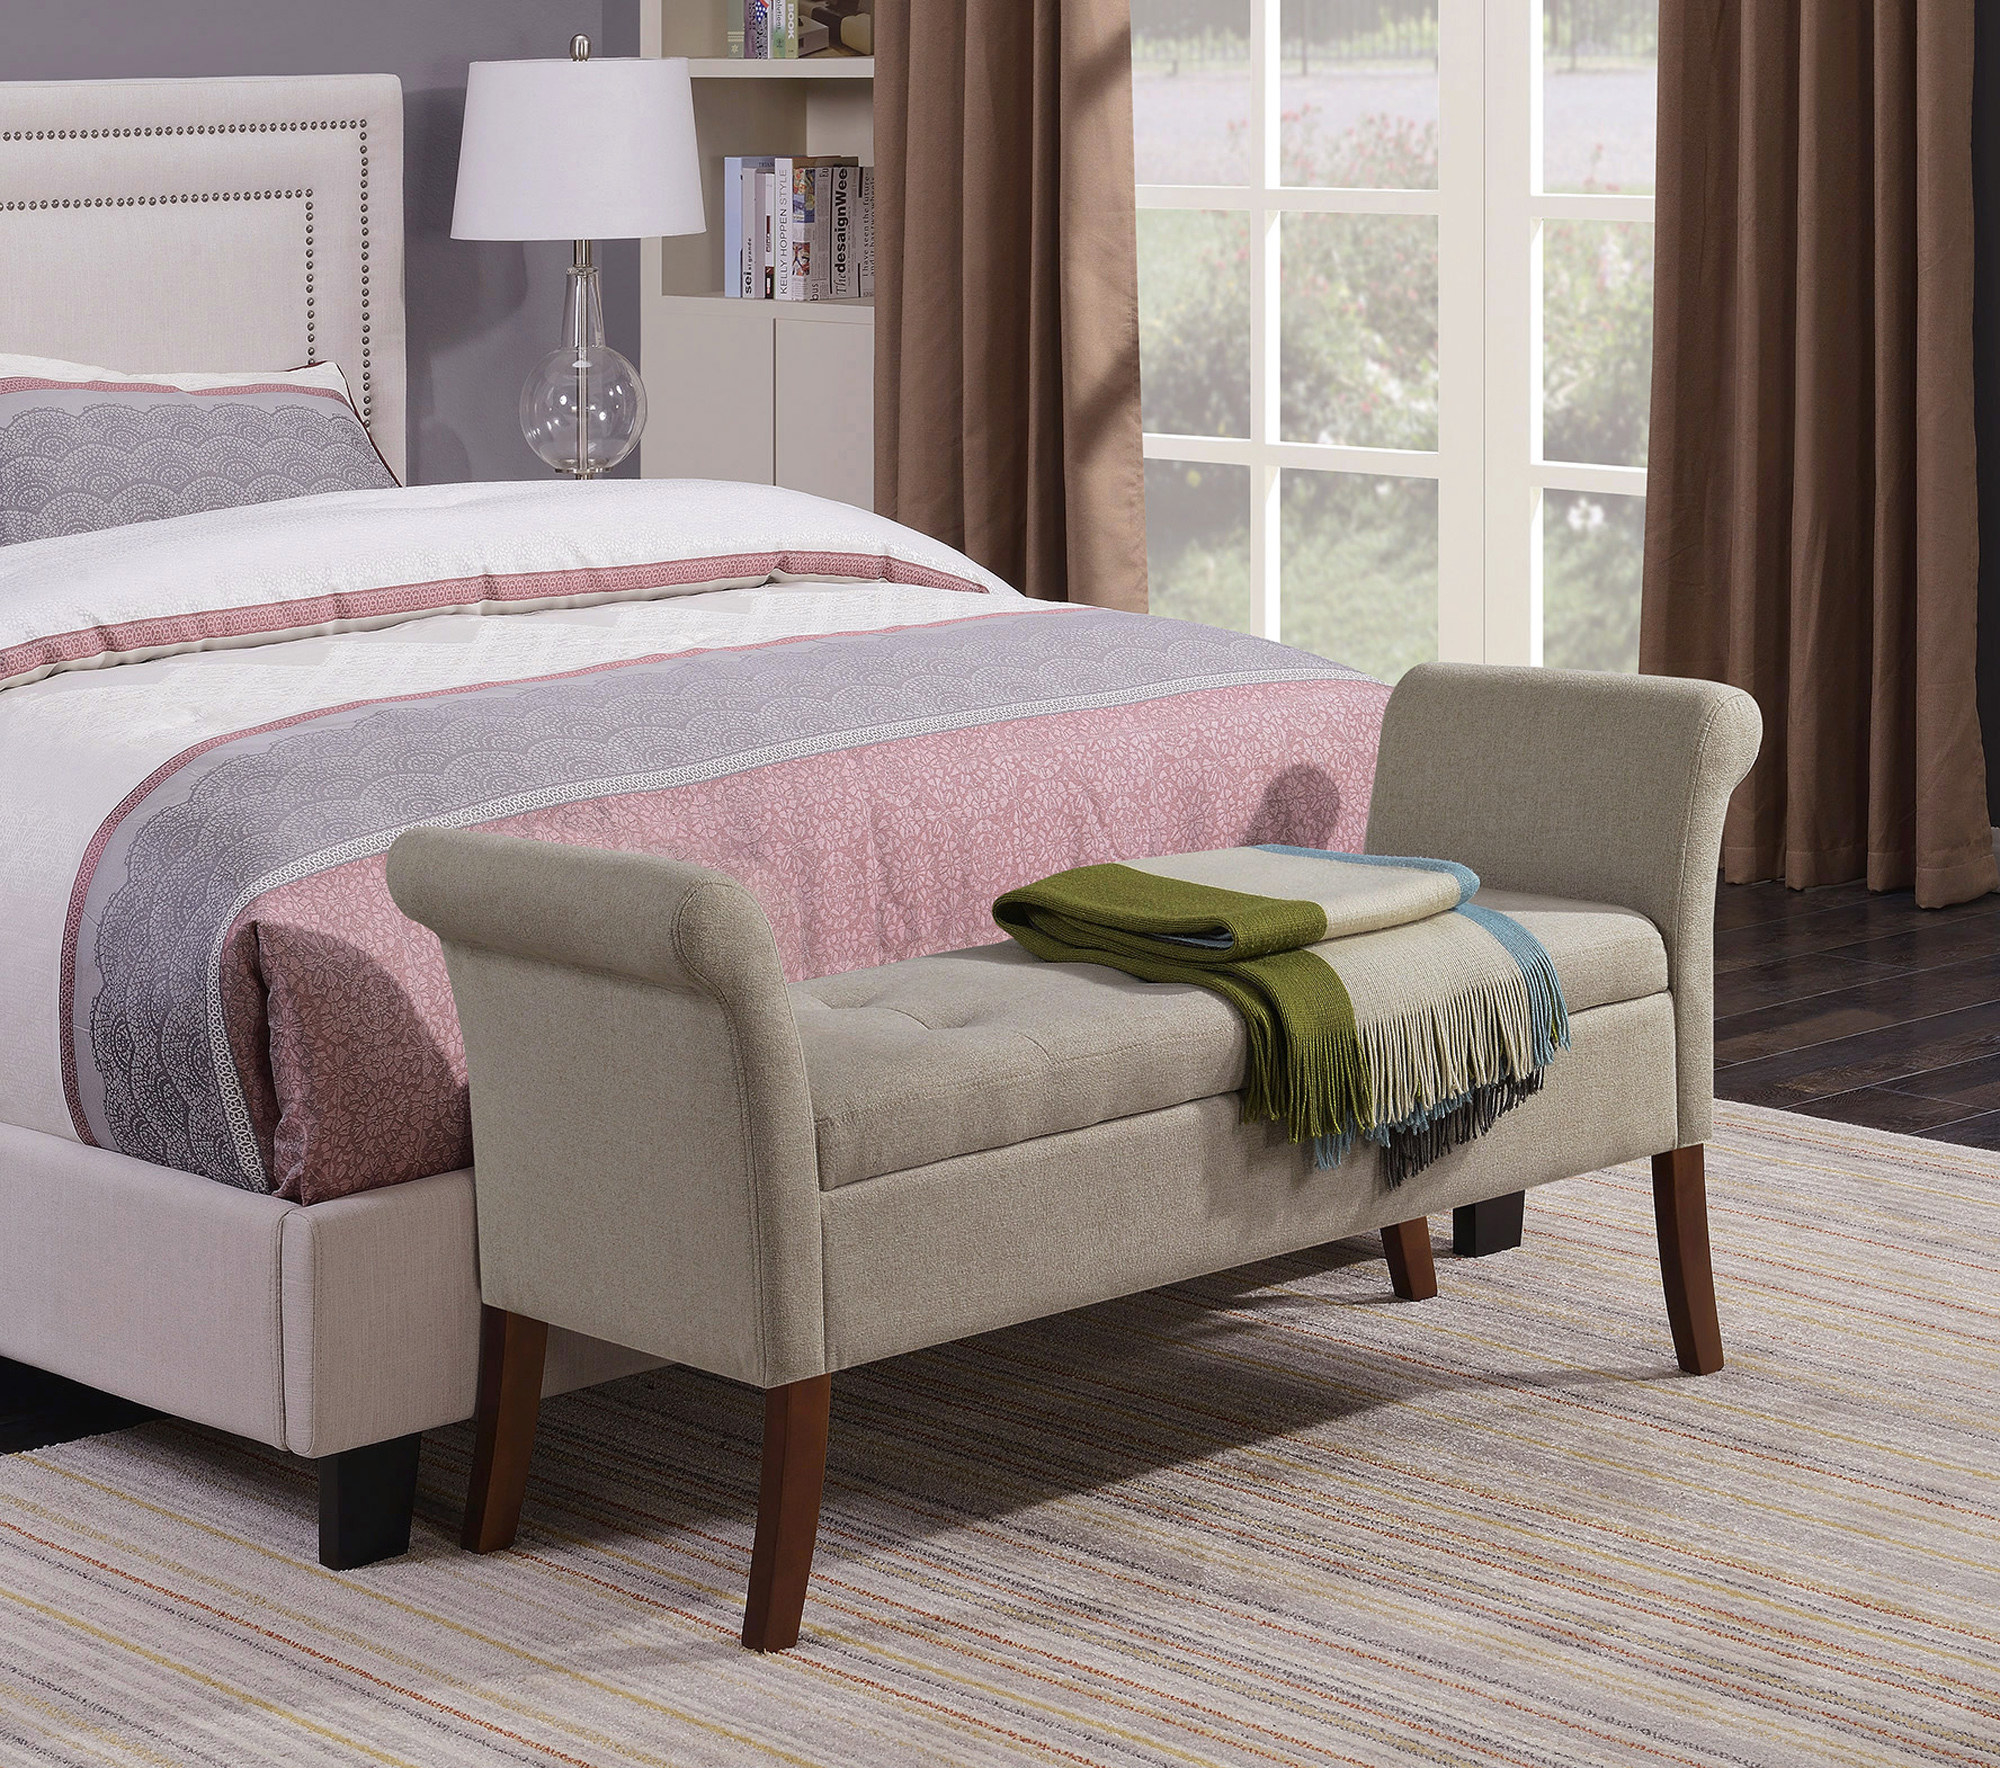 The storage bench at the foot of a bed